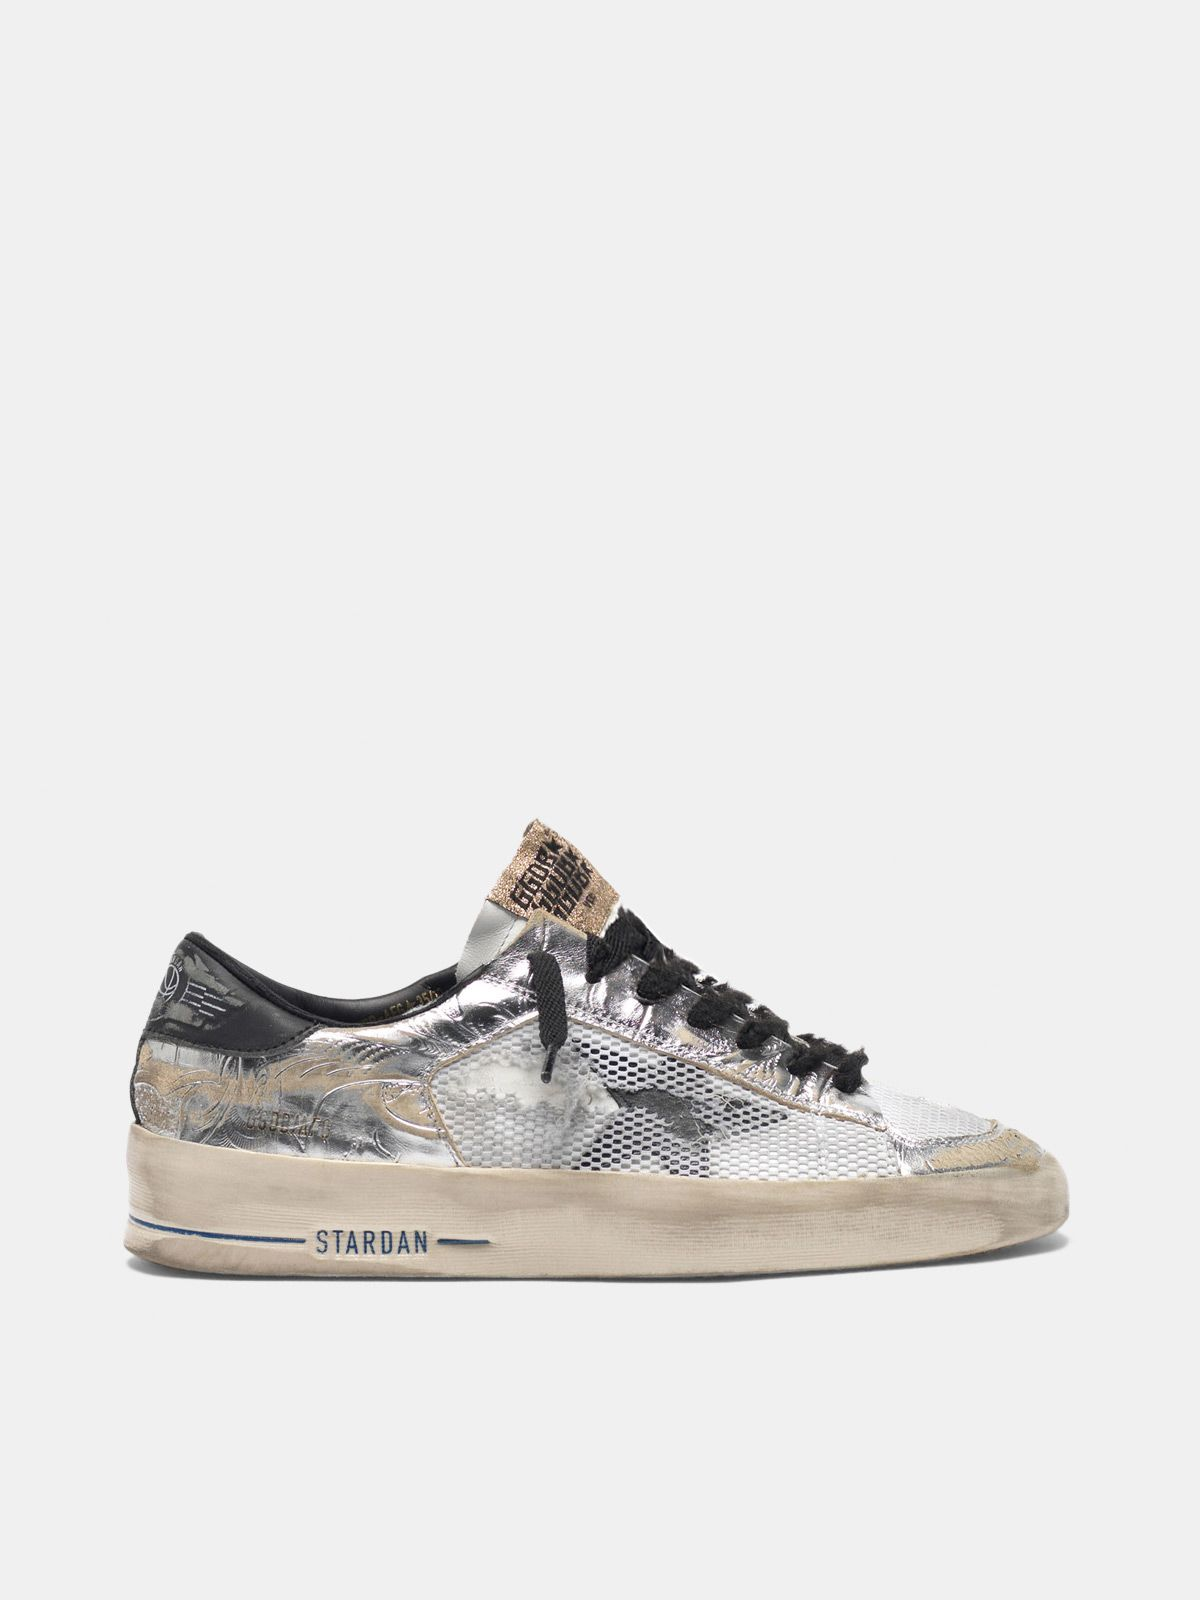 Golden Goose - Stardan LTD sneakers in laminated silver with floral design relief in